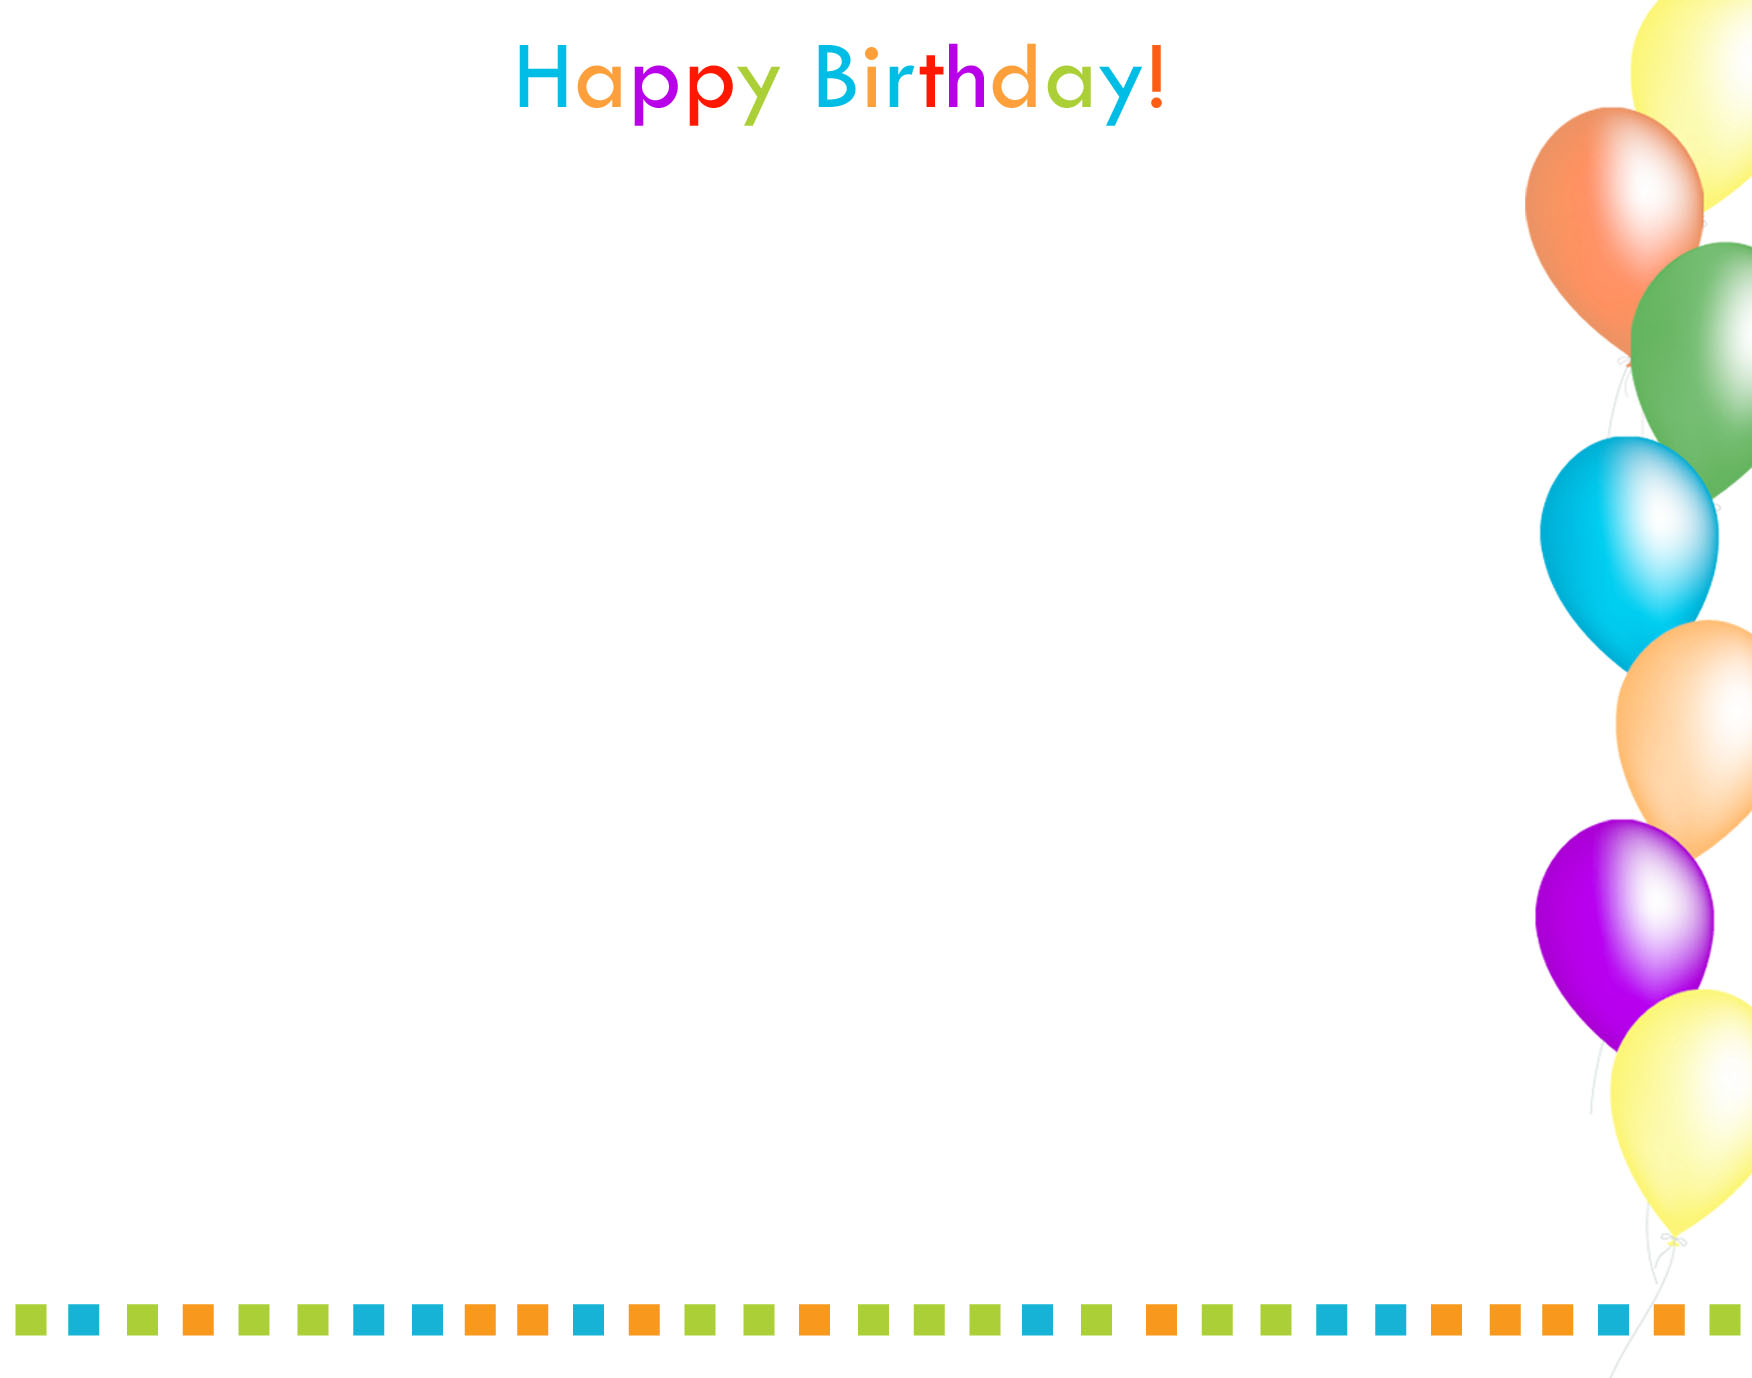 Birthday Party Wallpaper Background - WallpaperSafari Birthday Celebration Background Hd